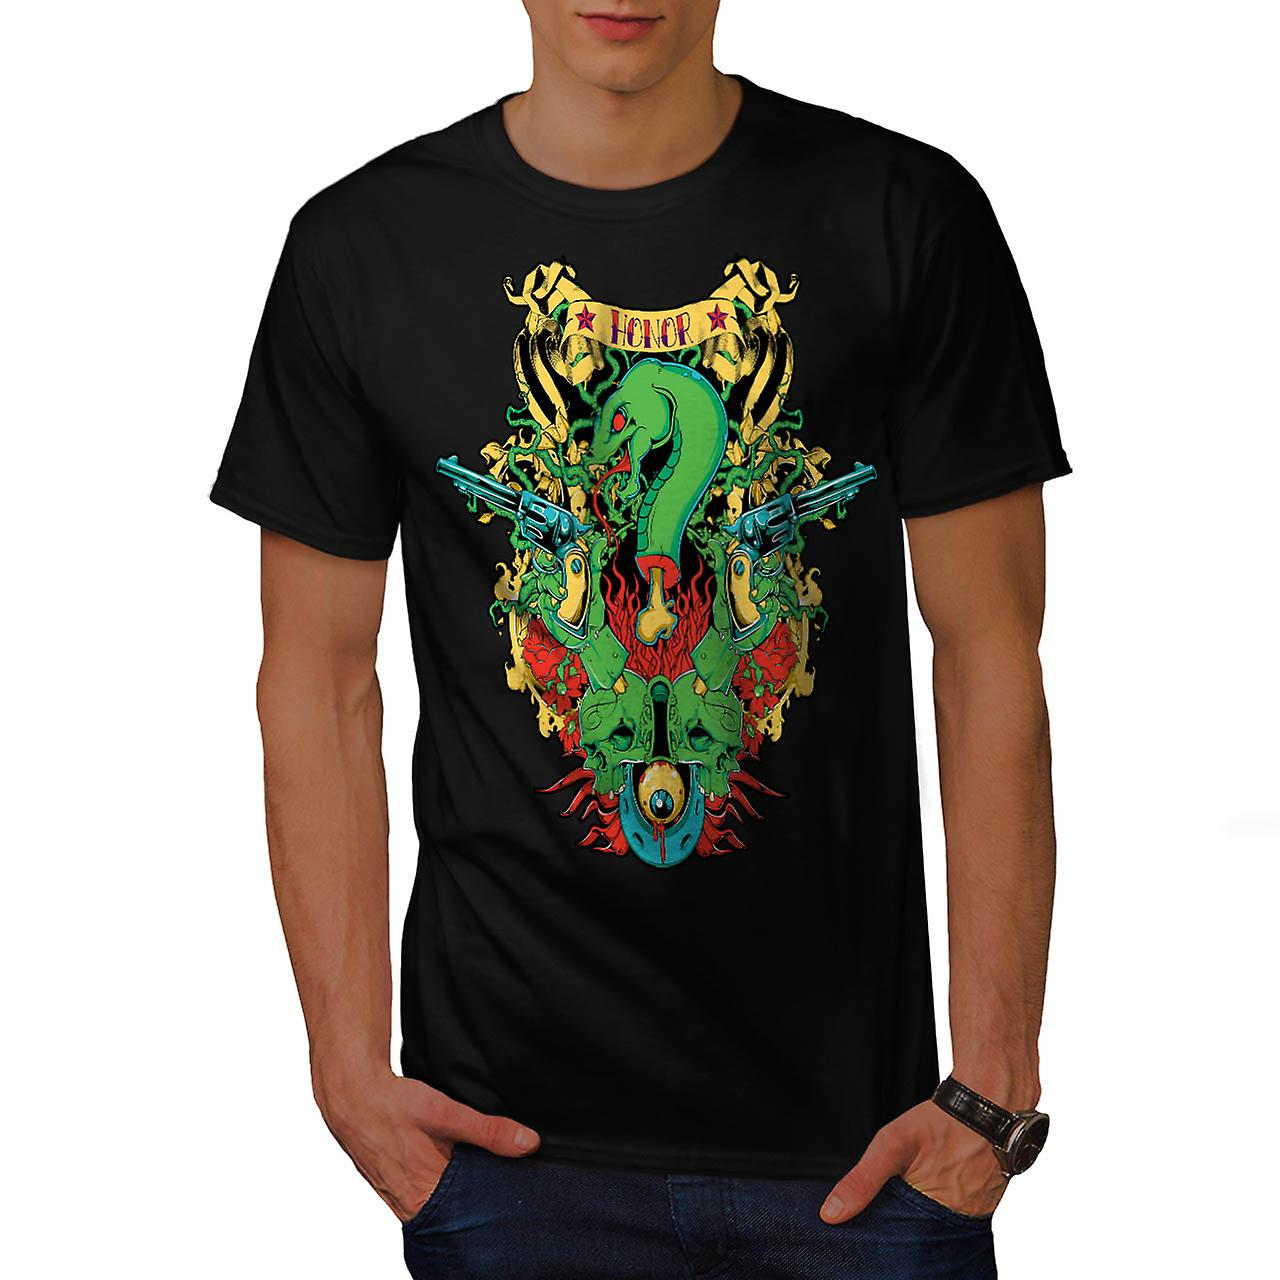 T-shirt nero uomini drago morte onore serpente mito | Wellcoda